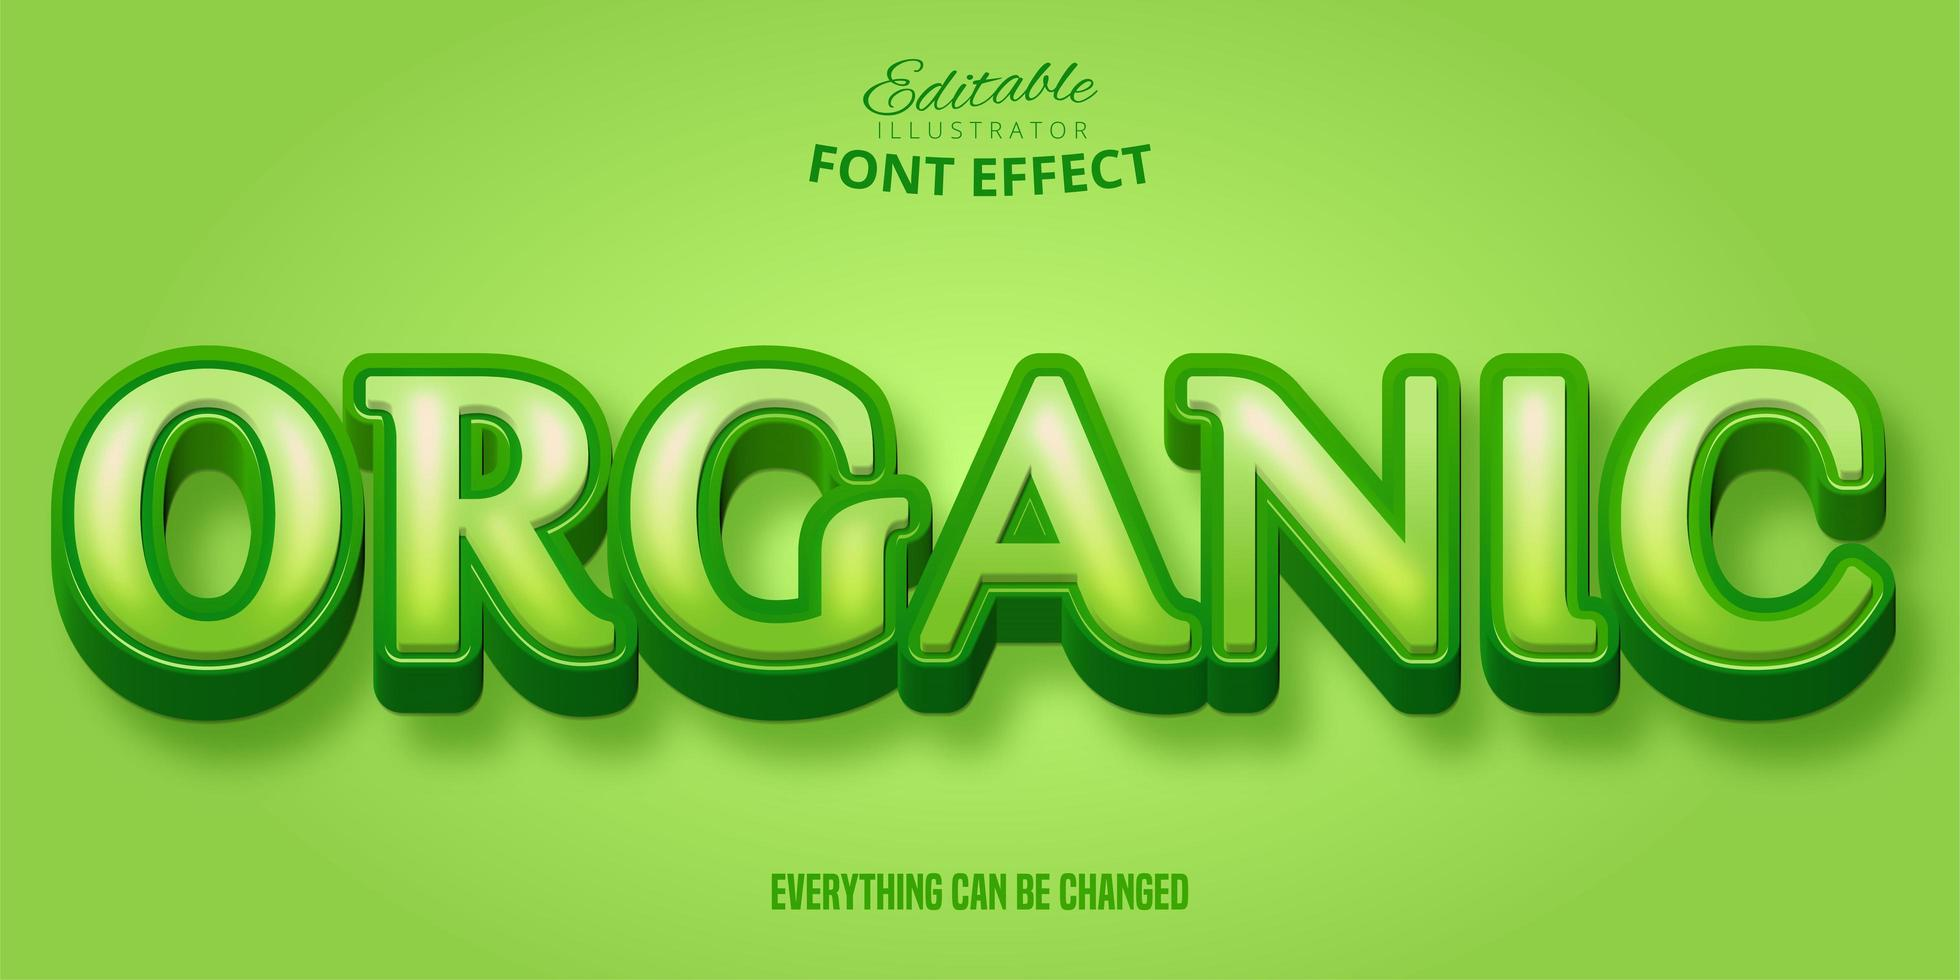 Organic Serif Green Font Effect  vector